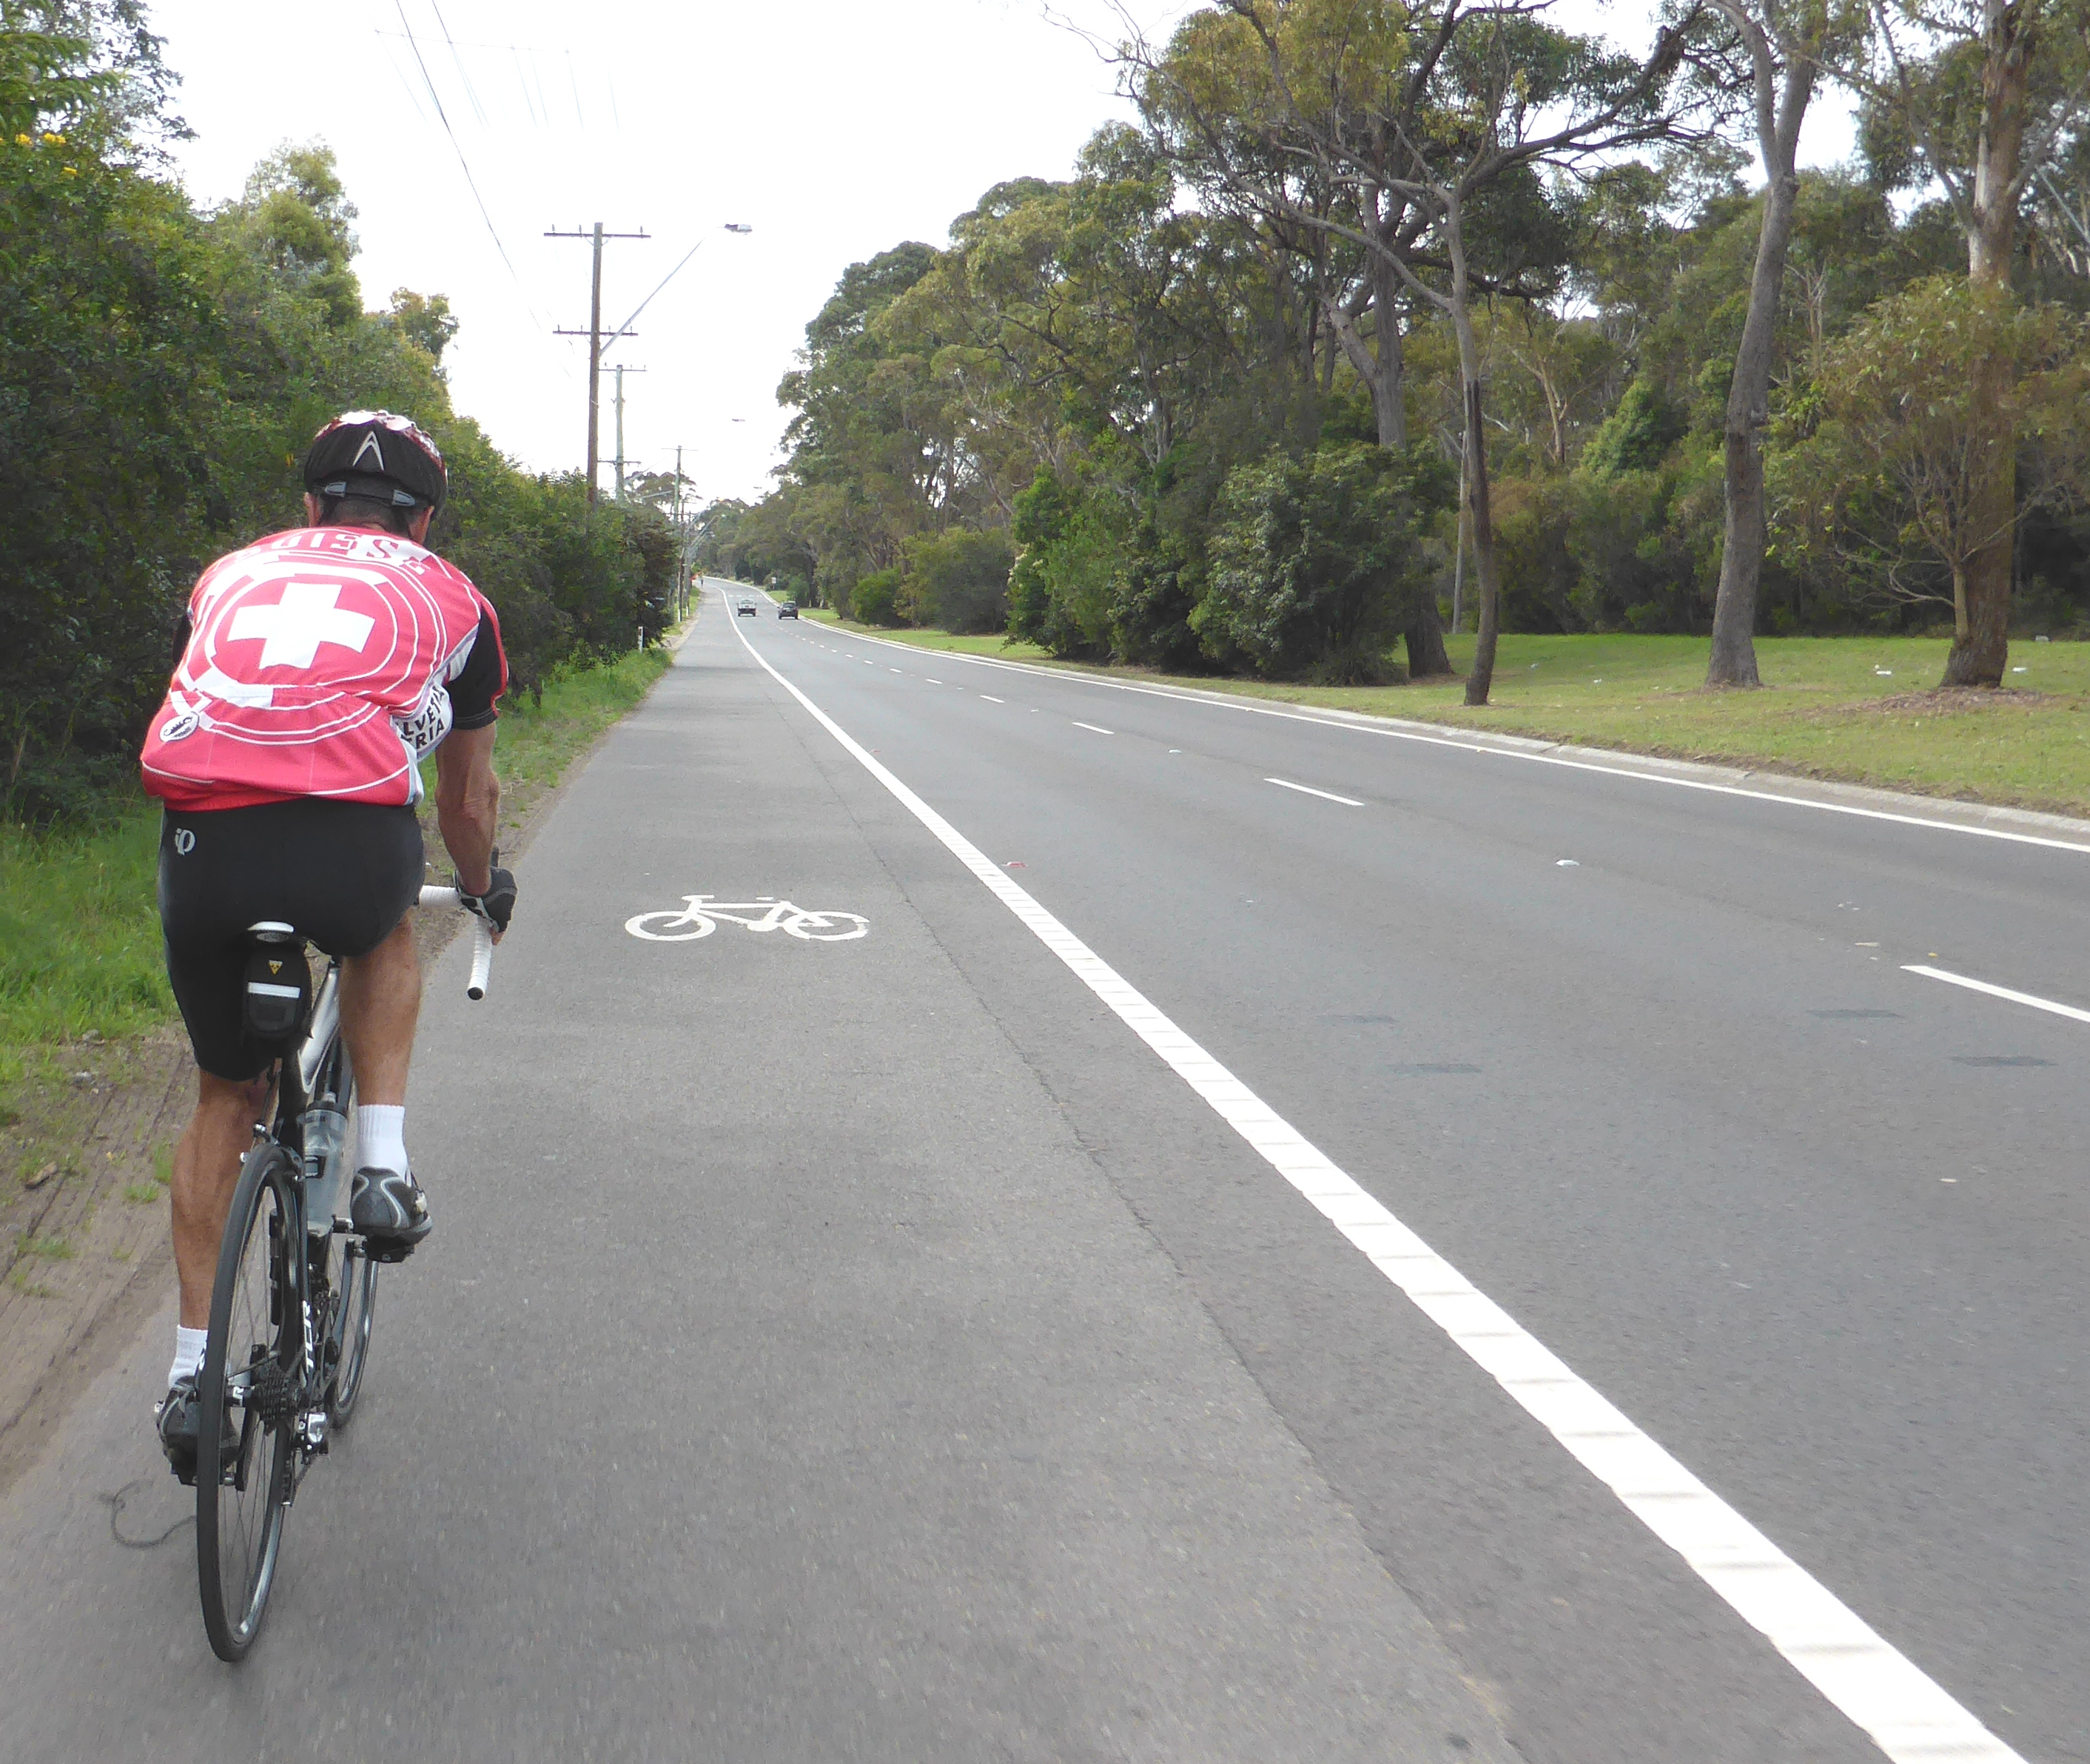 Cycling on freeways and major highways in Australia ...